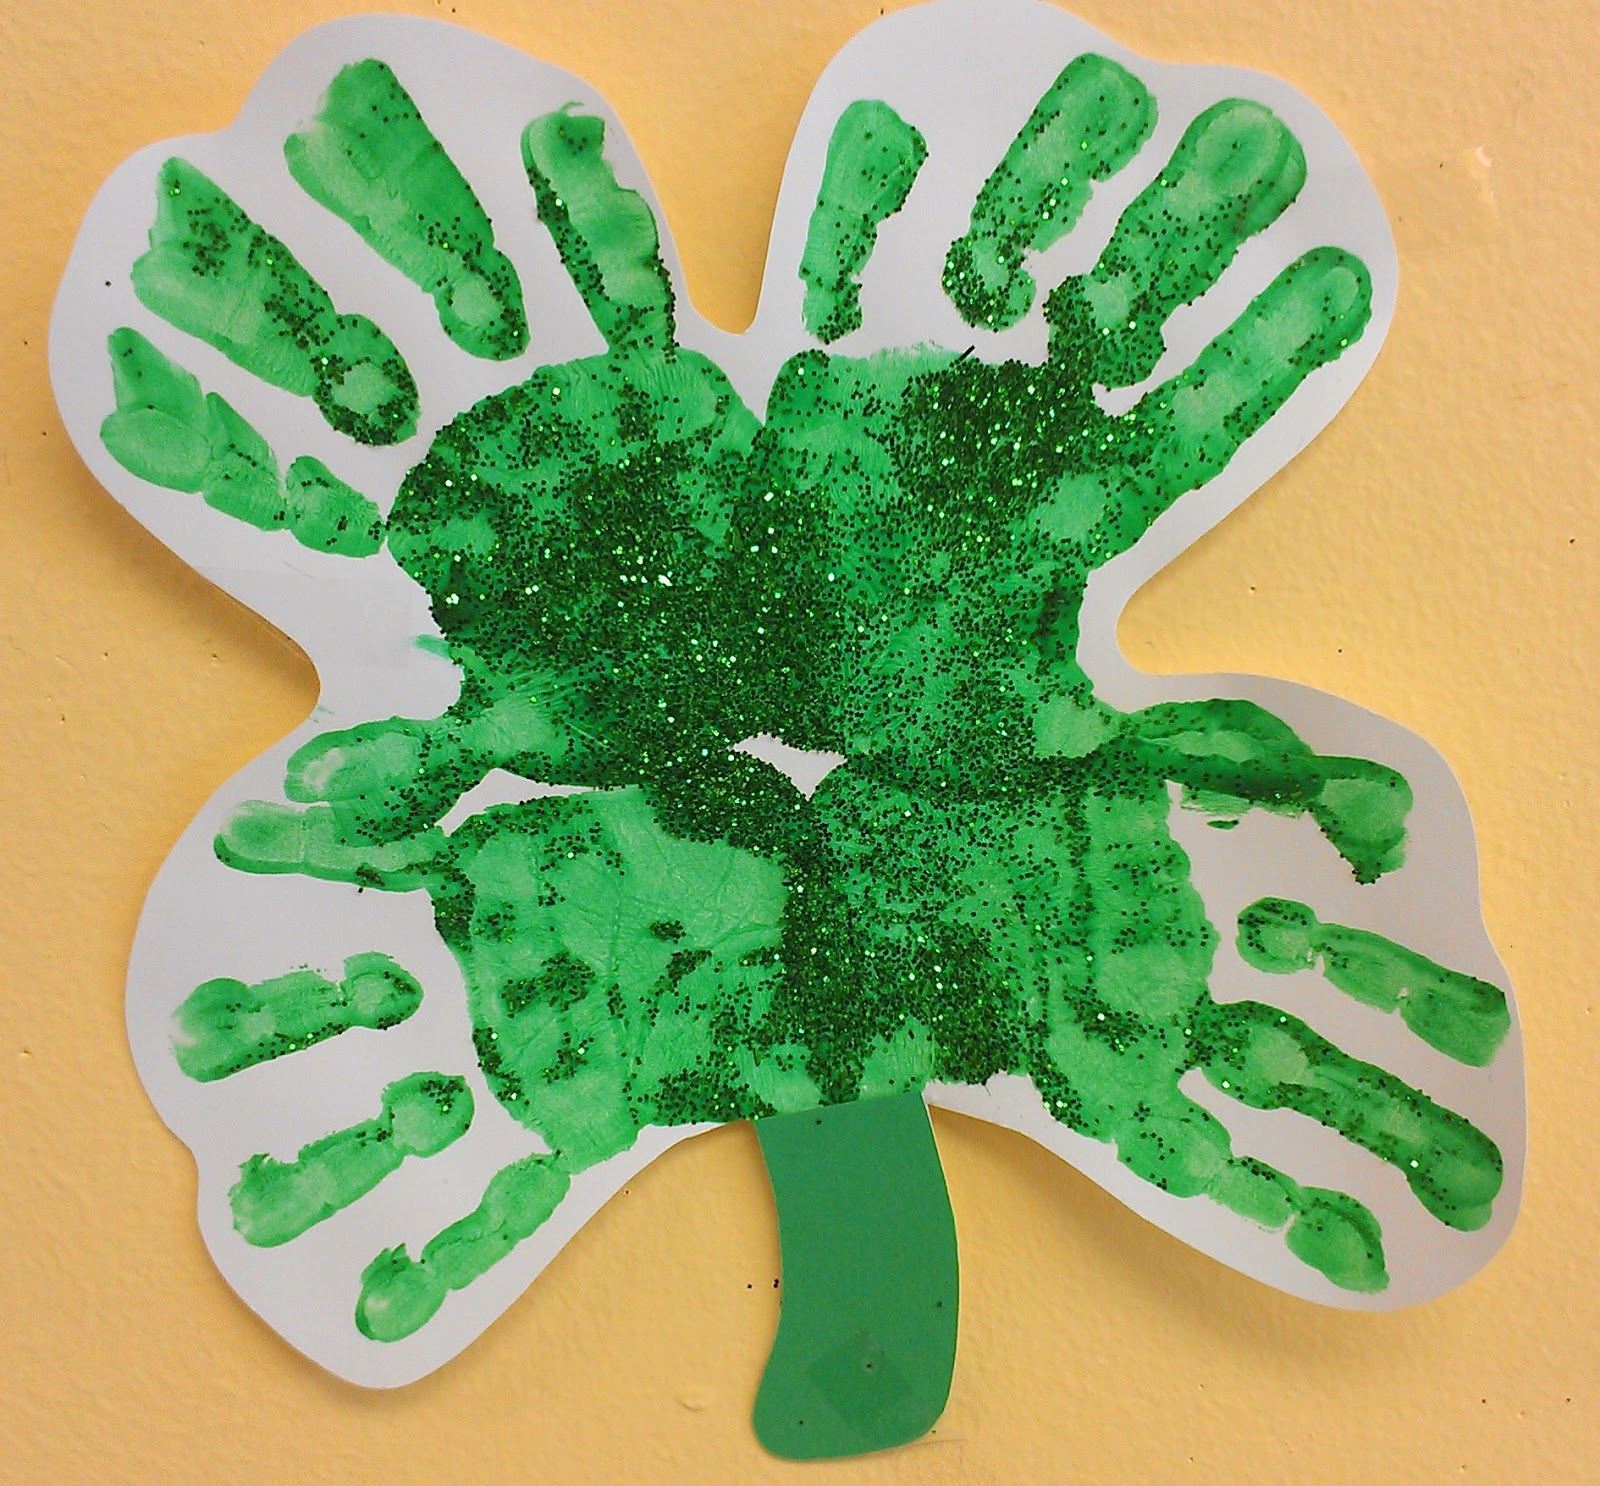 Preschool ideas for 2 year olds st patrick 39 s day for Arts and crafts for 2 year olds